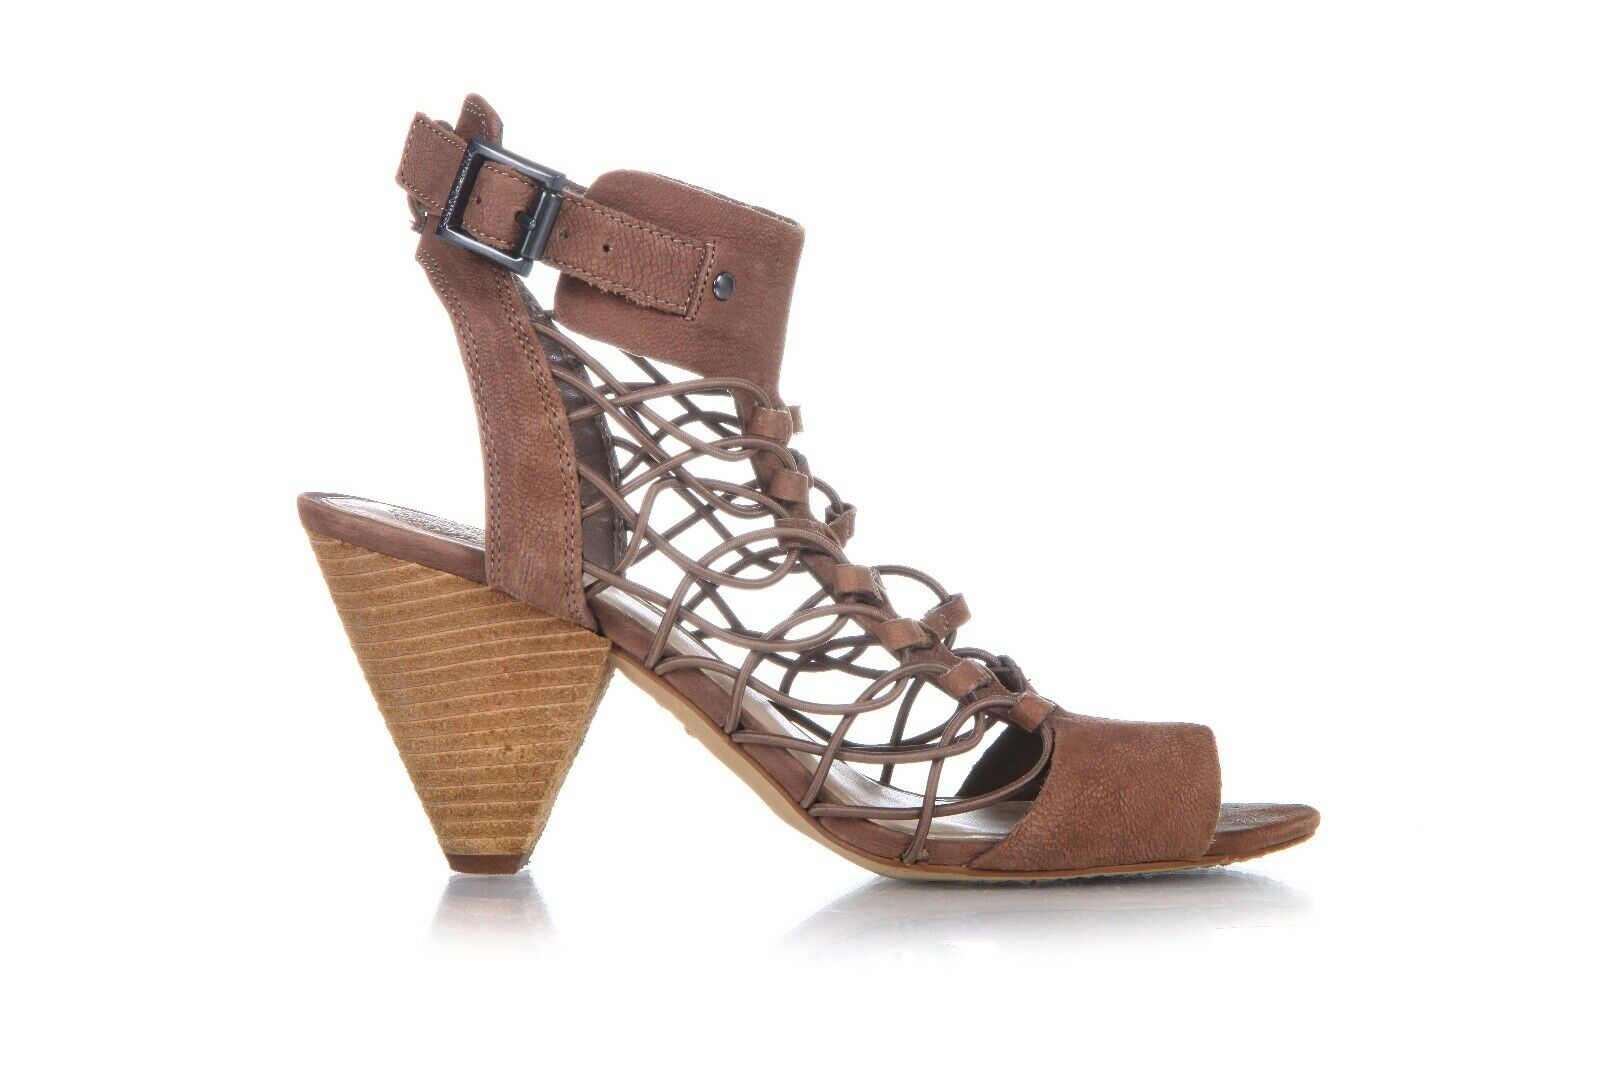 VINCE CAMUTO Caged Sandals Size 7.5 M Leather Brown Block Heel Peep Toe Strappy